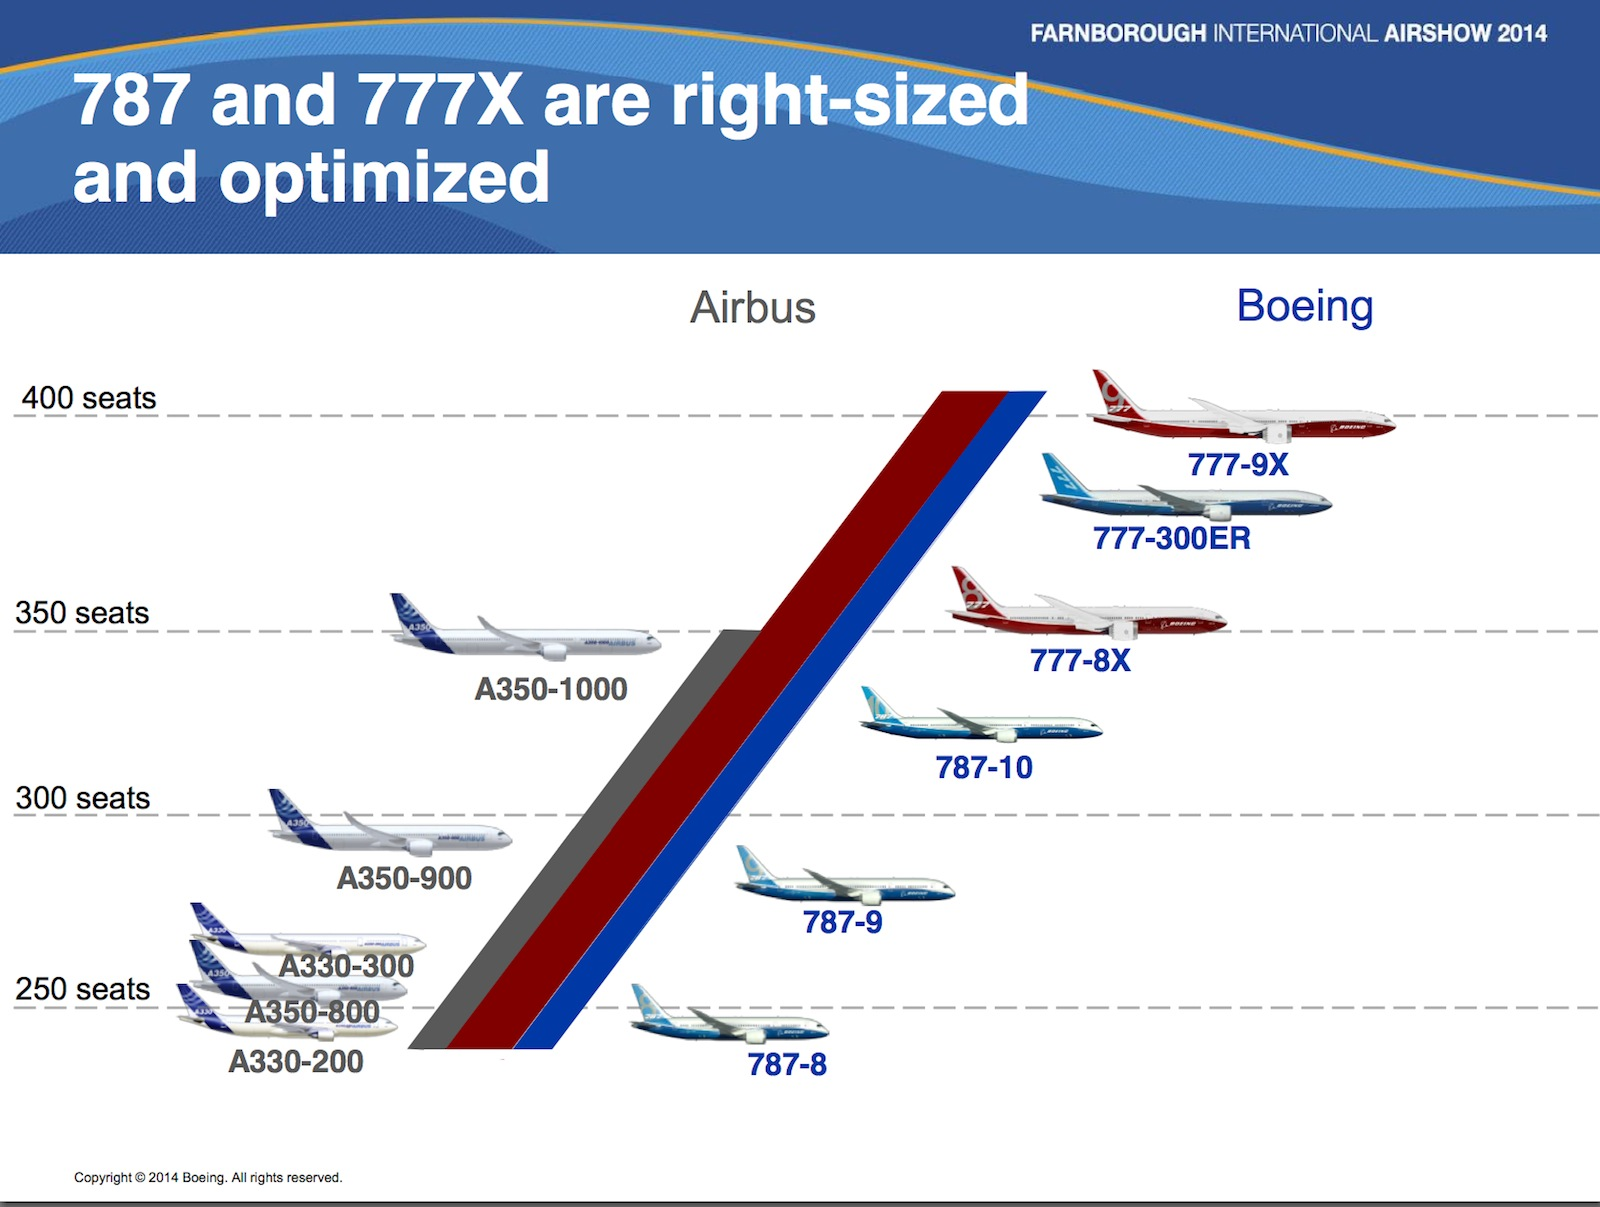 review of the boeing vs airbus On the simple comparison of orders, the 787 is beating the a380, though airbus has the satisfaction of knowing its superjumbo is slowly wiping the ageing boeing 747 from the skies.